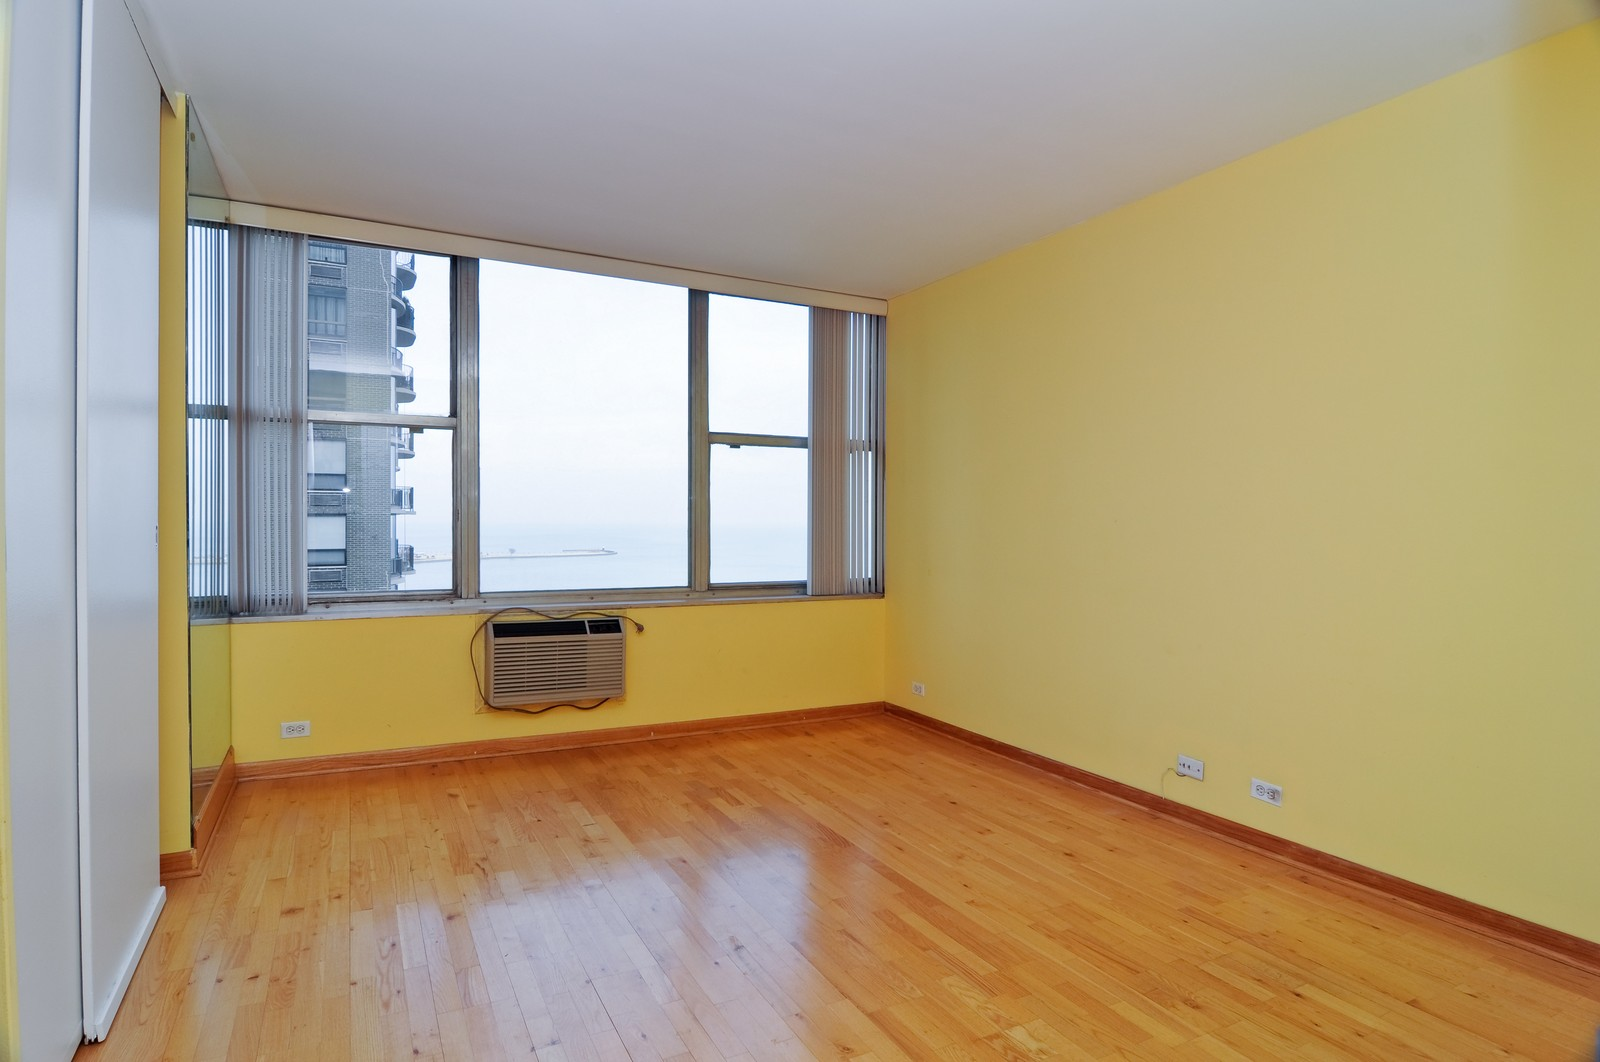 Real Estate Photography - 1000 Lake Shore Dr, Unit 2106, Chicago, IL, 60611 - Bedroom